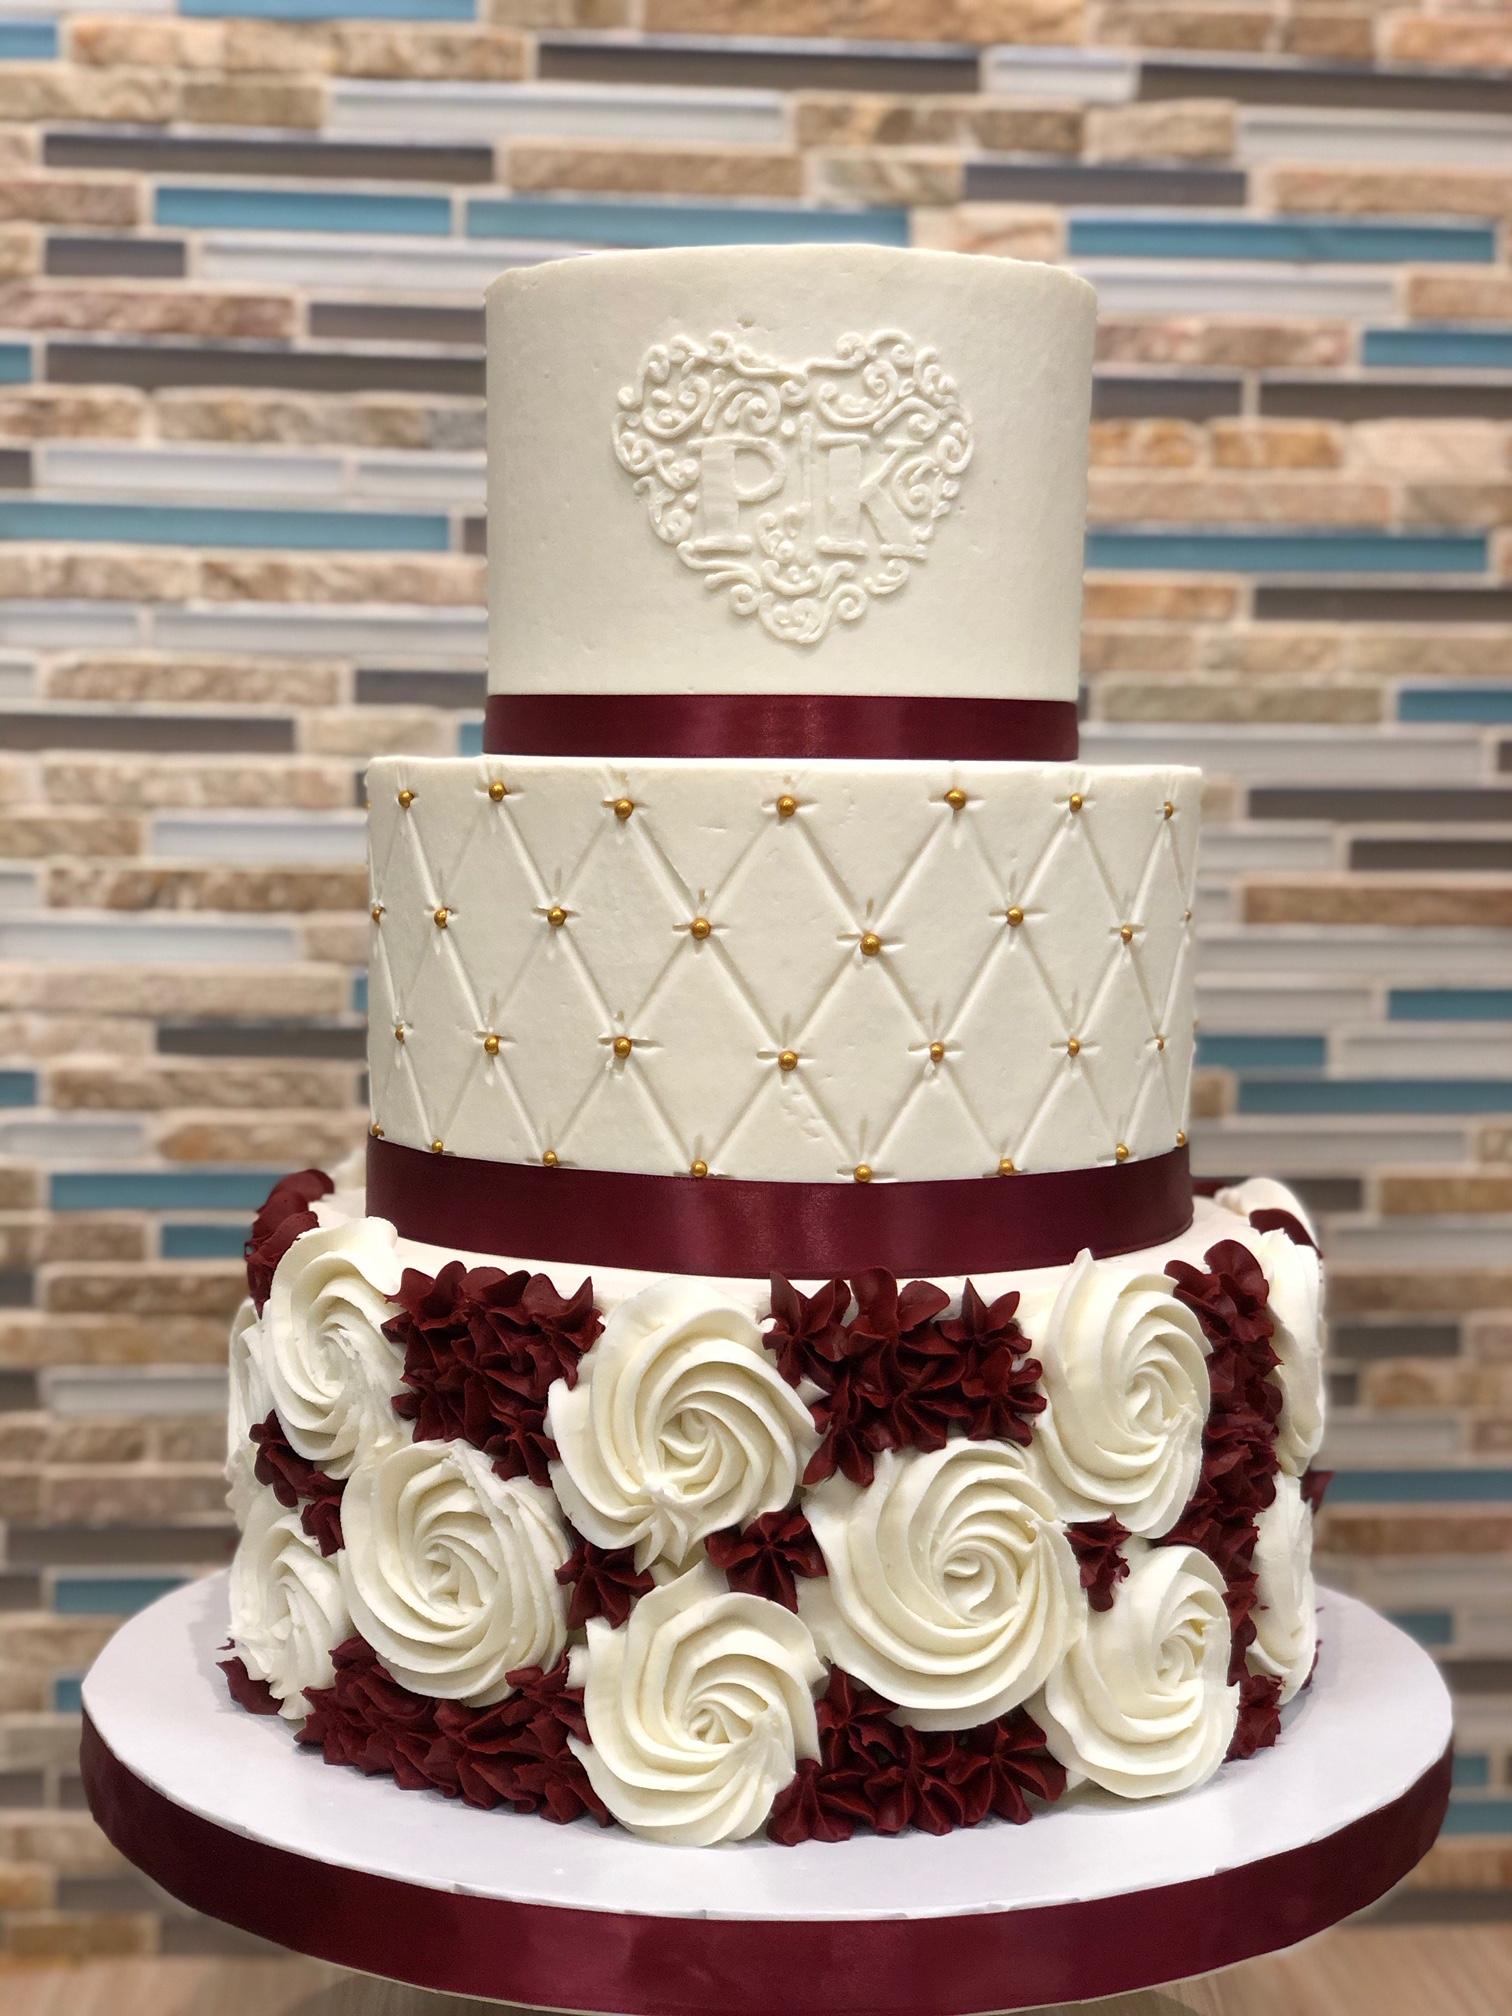 Buttercream Rosettes Wedding Cake